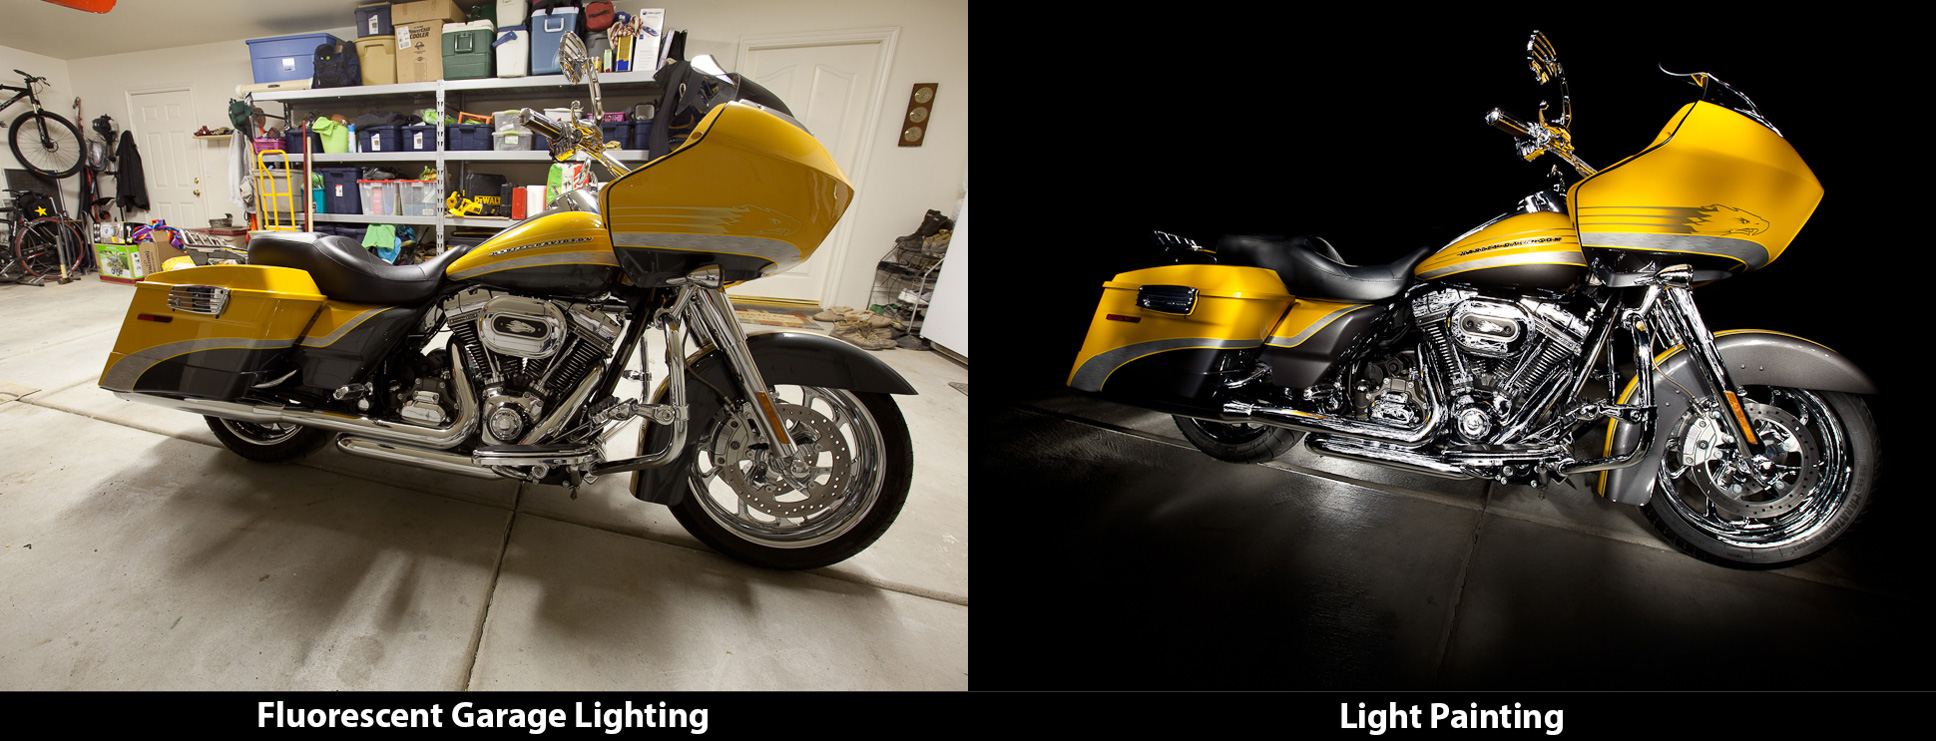 The Light Painting Difference